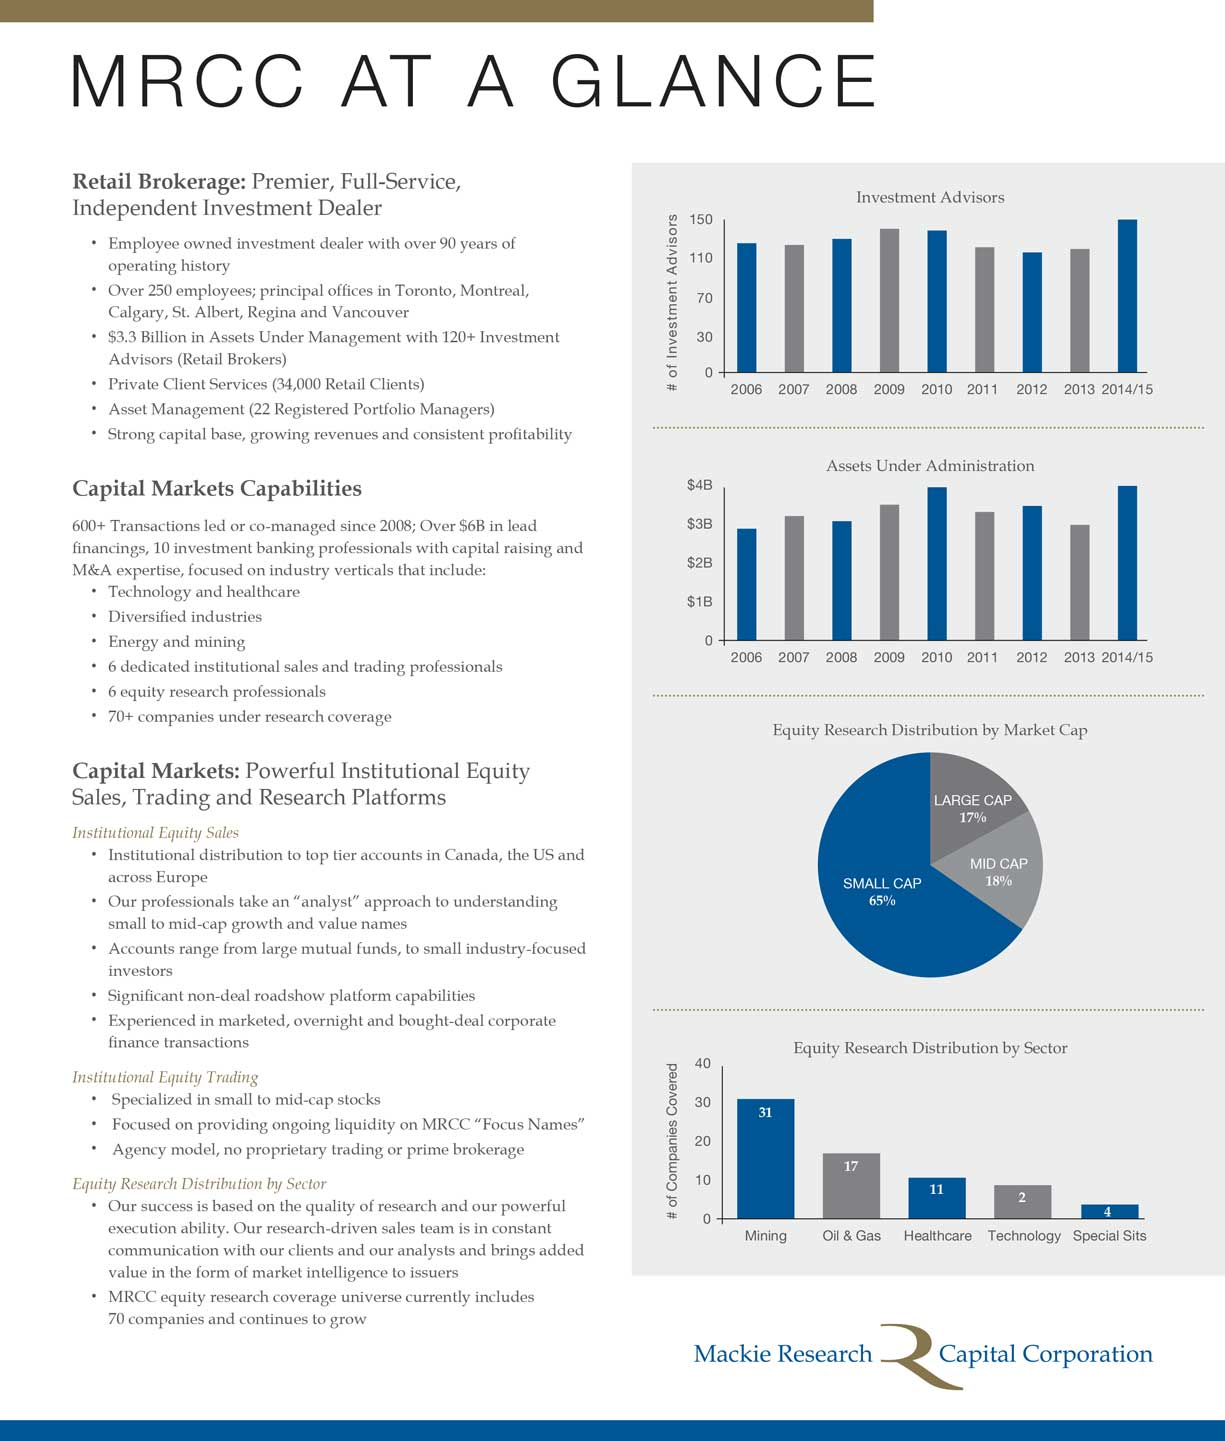 Careers - Mackie Research Capital Corporation